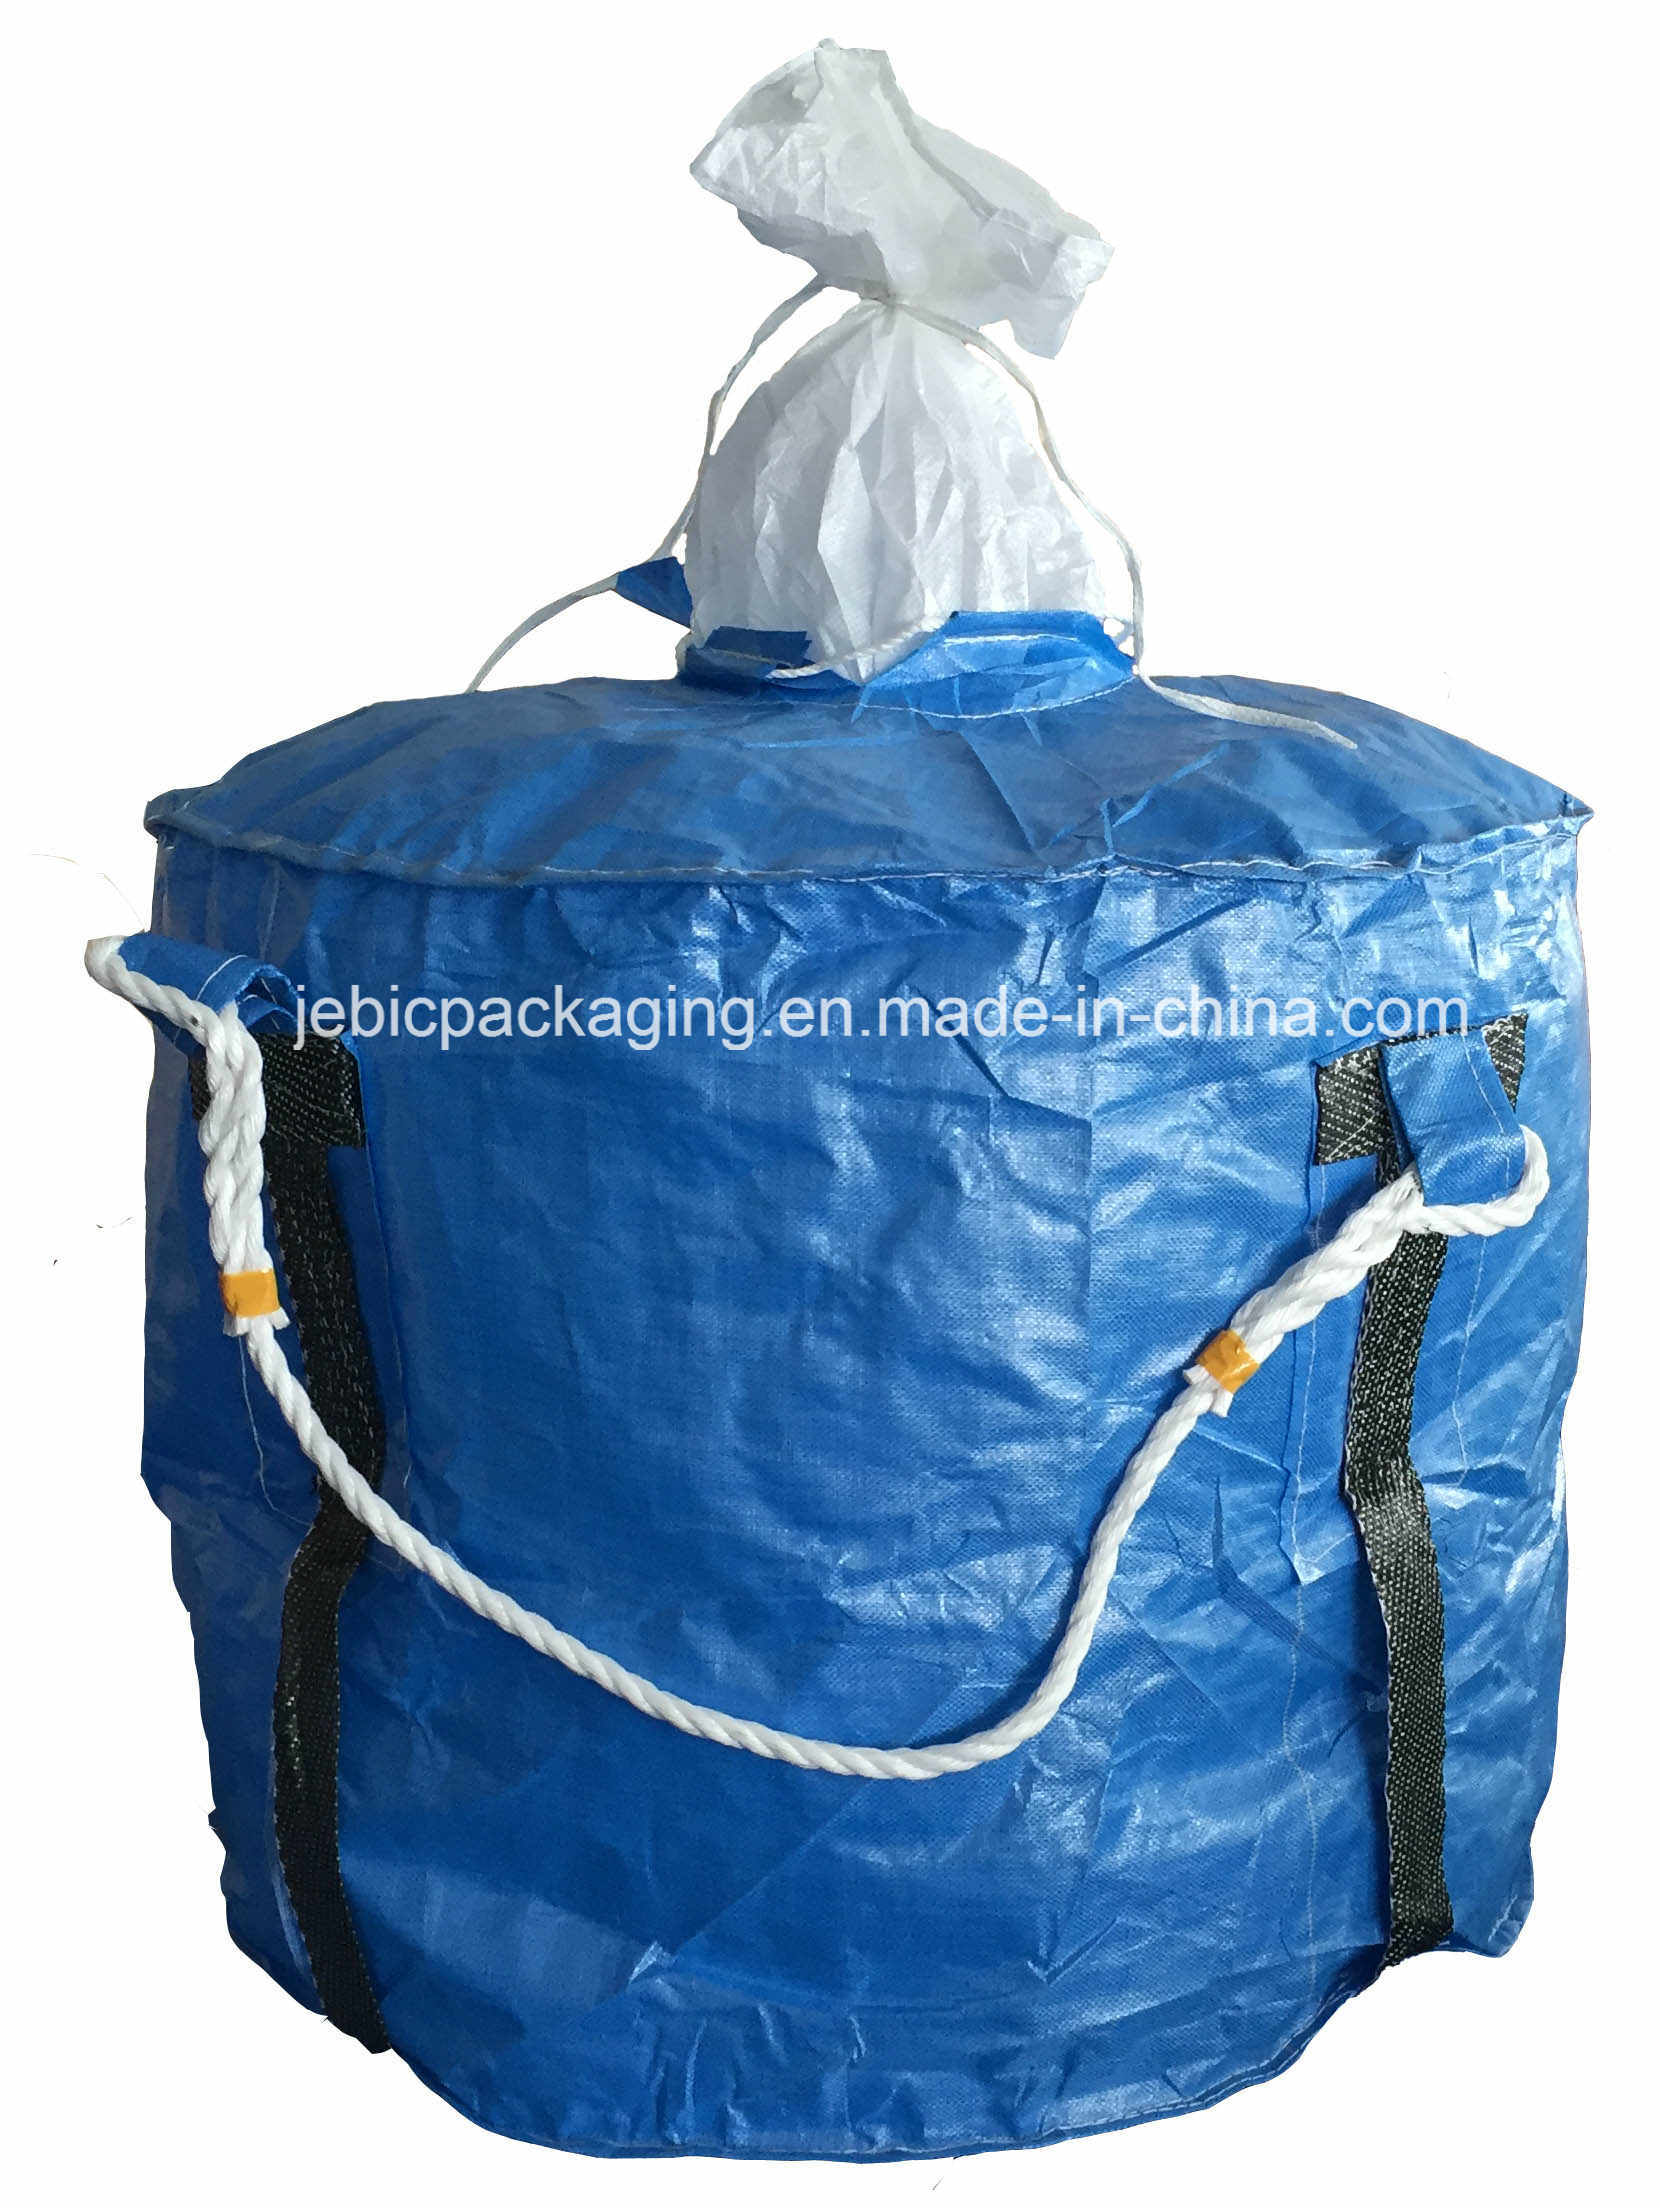 2 Point Loops FIBC Bulk Bag pictures & photos